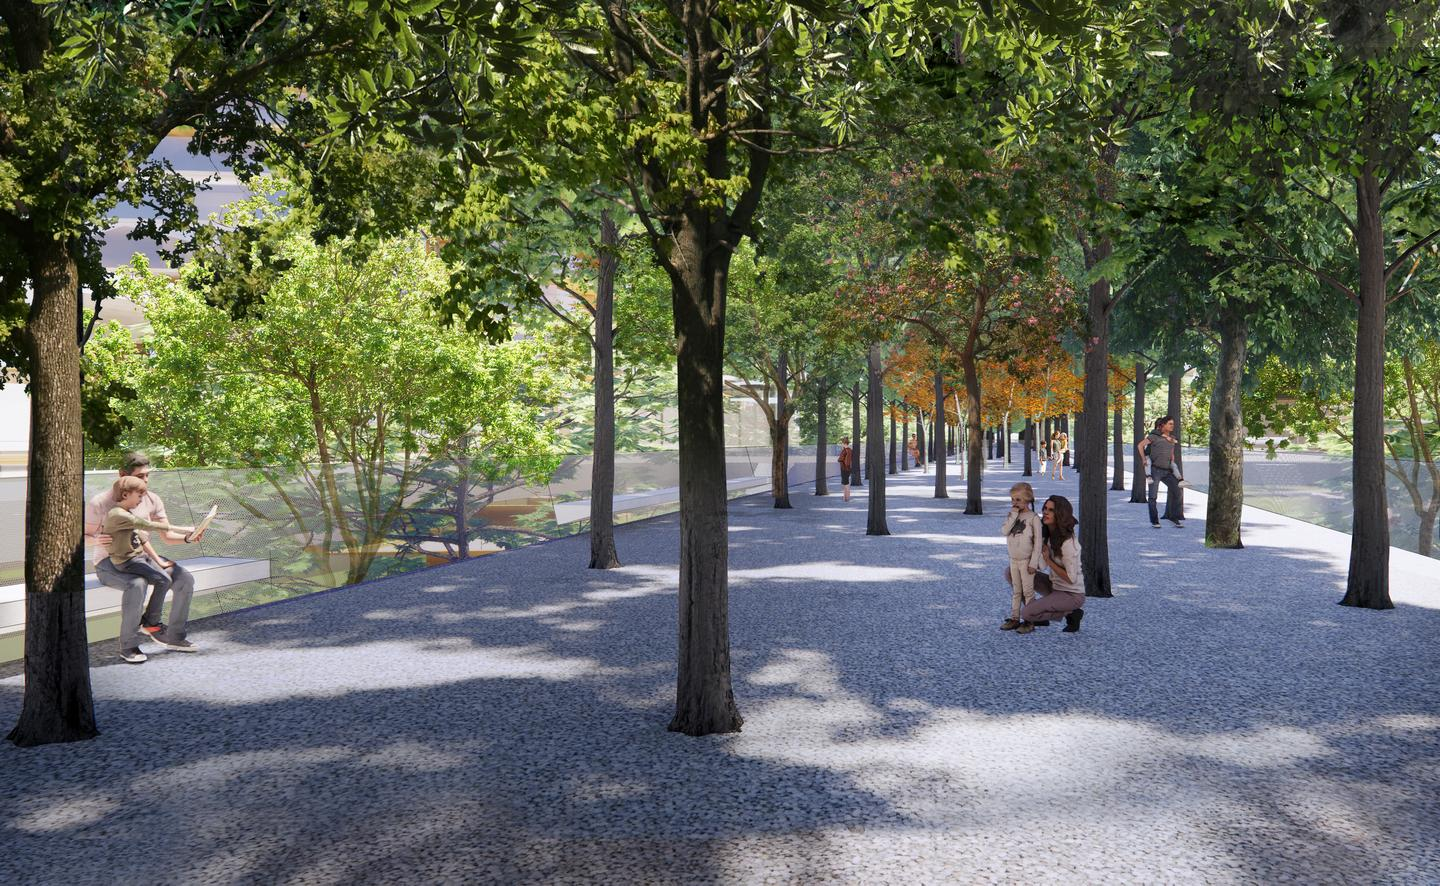 Parco Romana will include a tree-lined elevated walkway